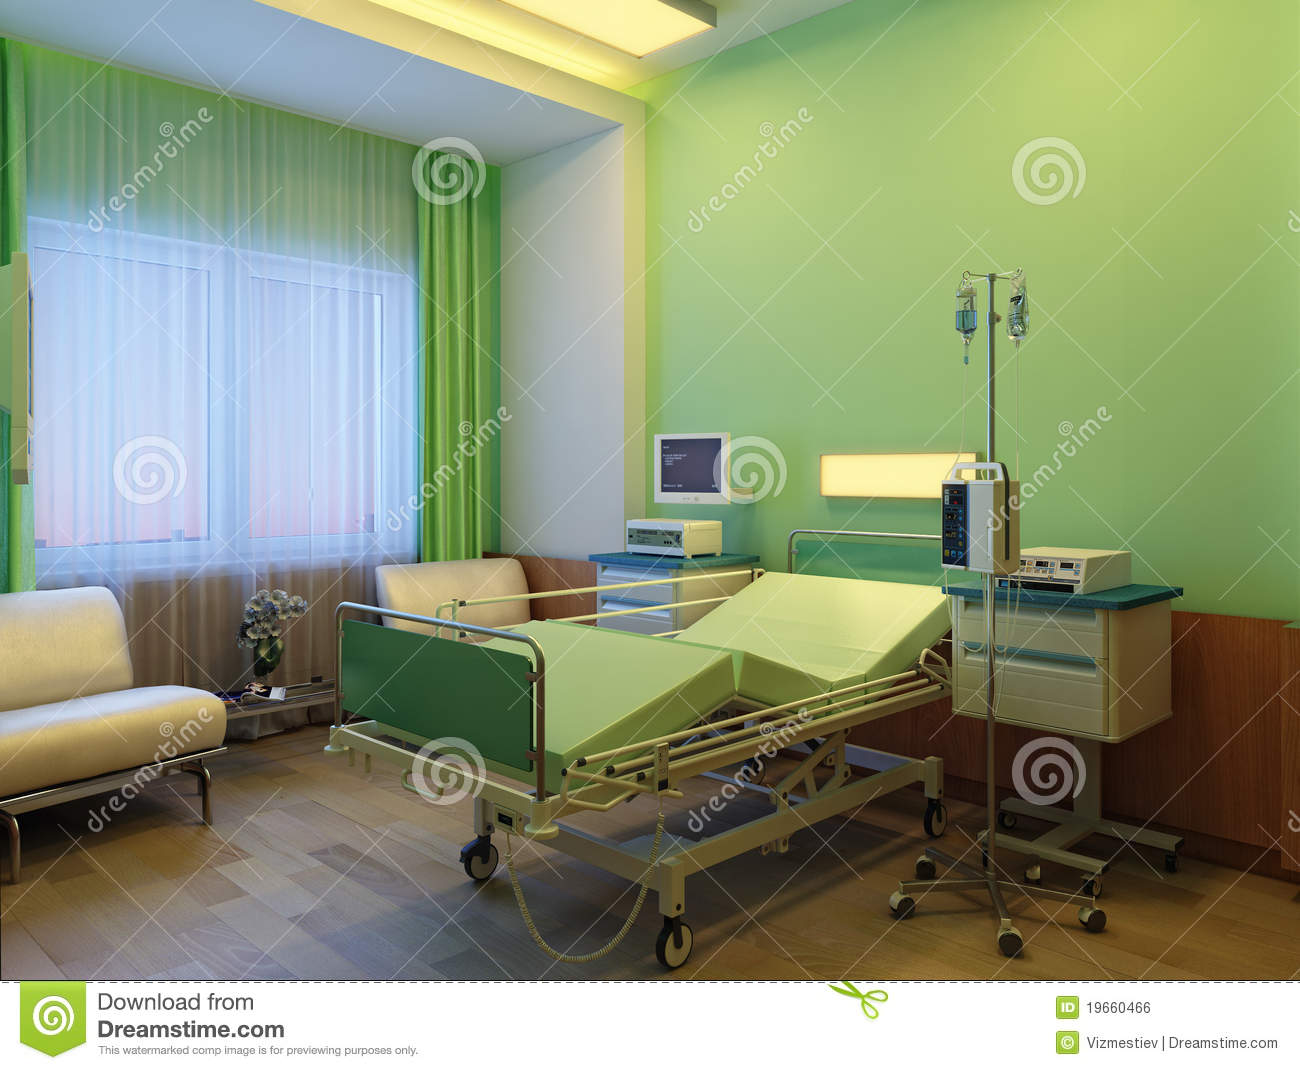 Modern hospital interior - Interior Of Modern Hospital At Night Royalty Free Stock Image